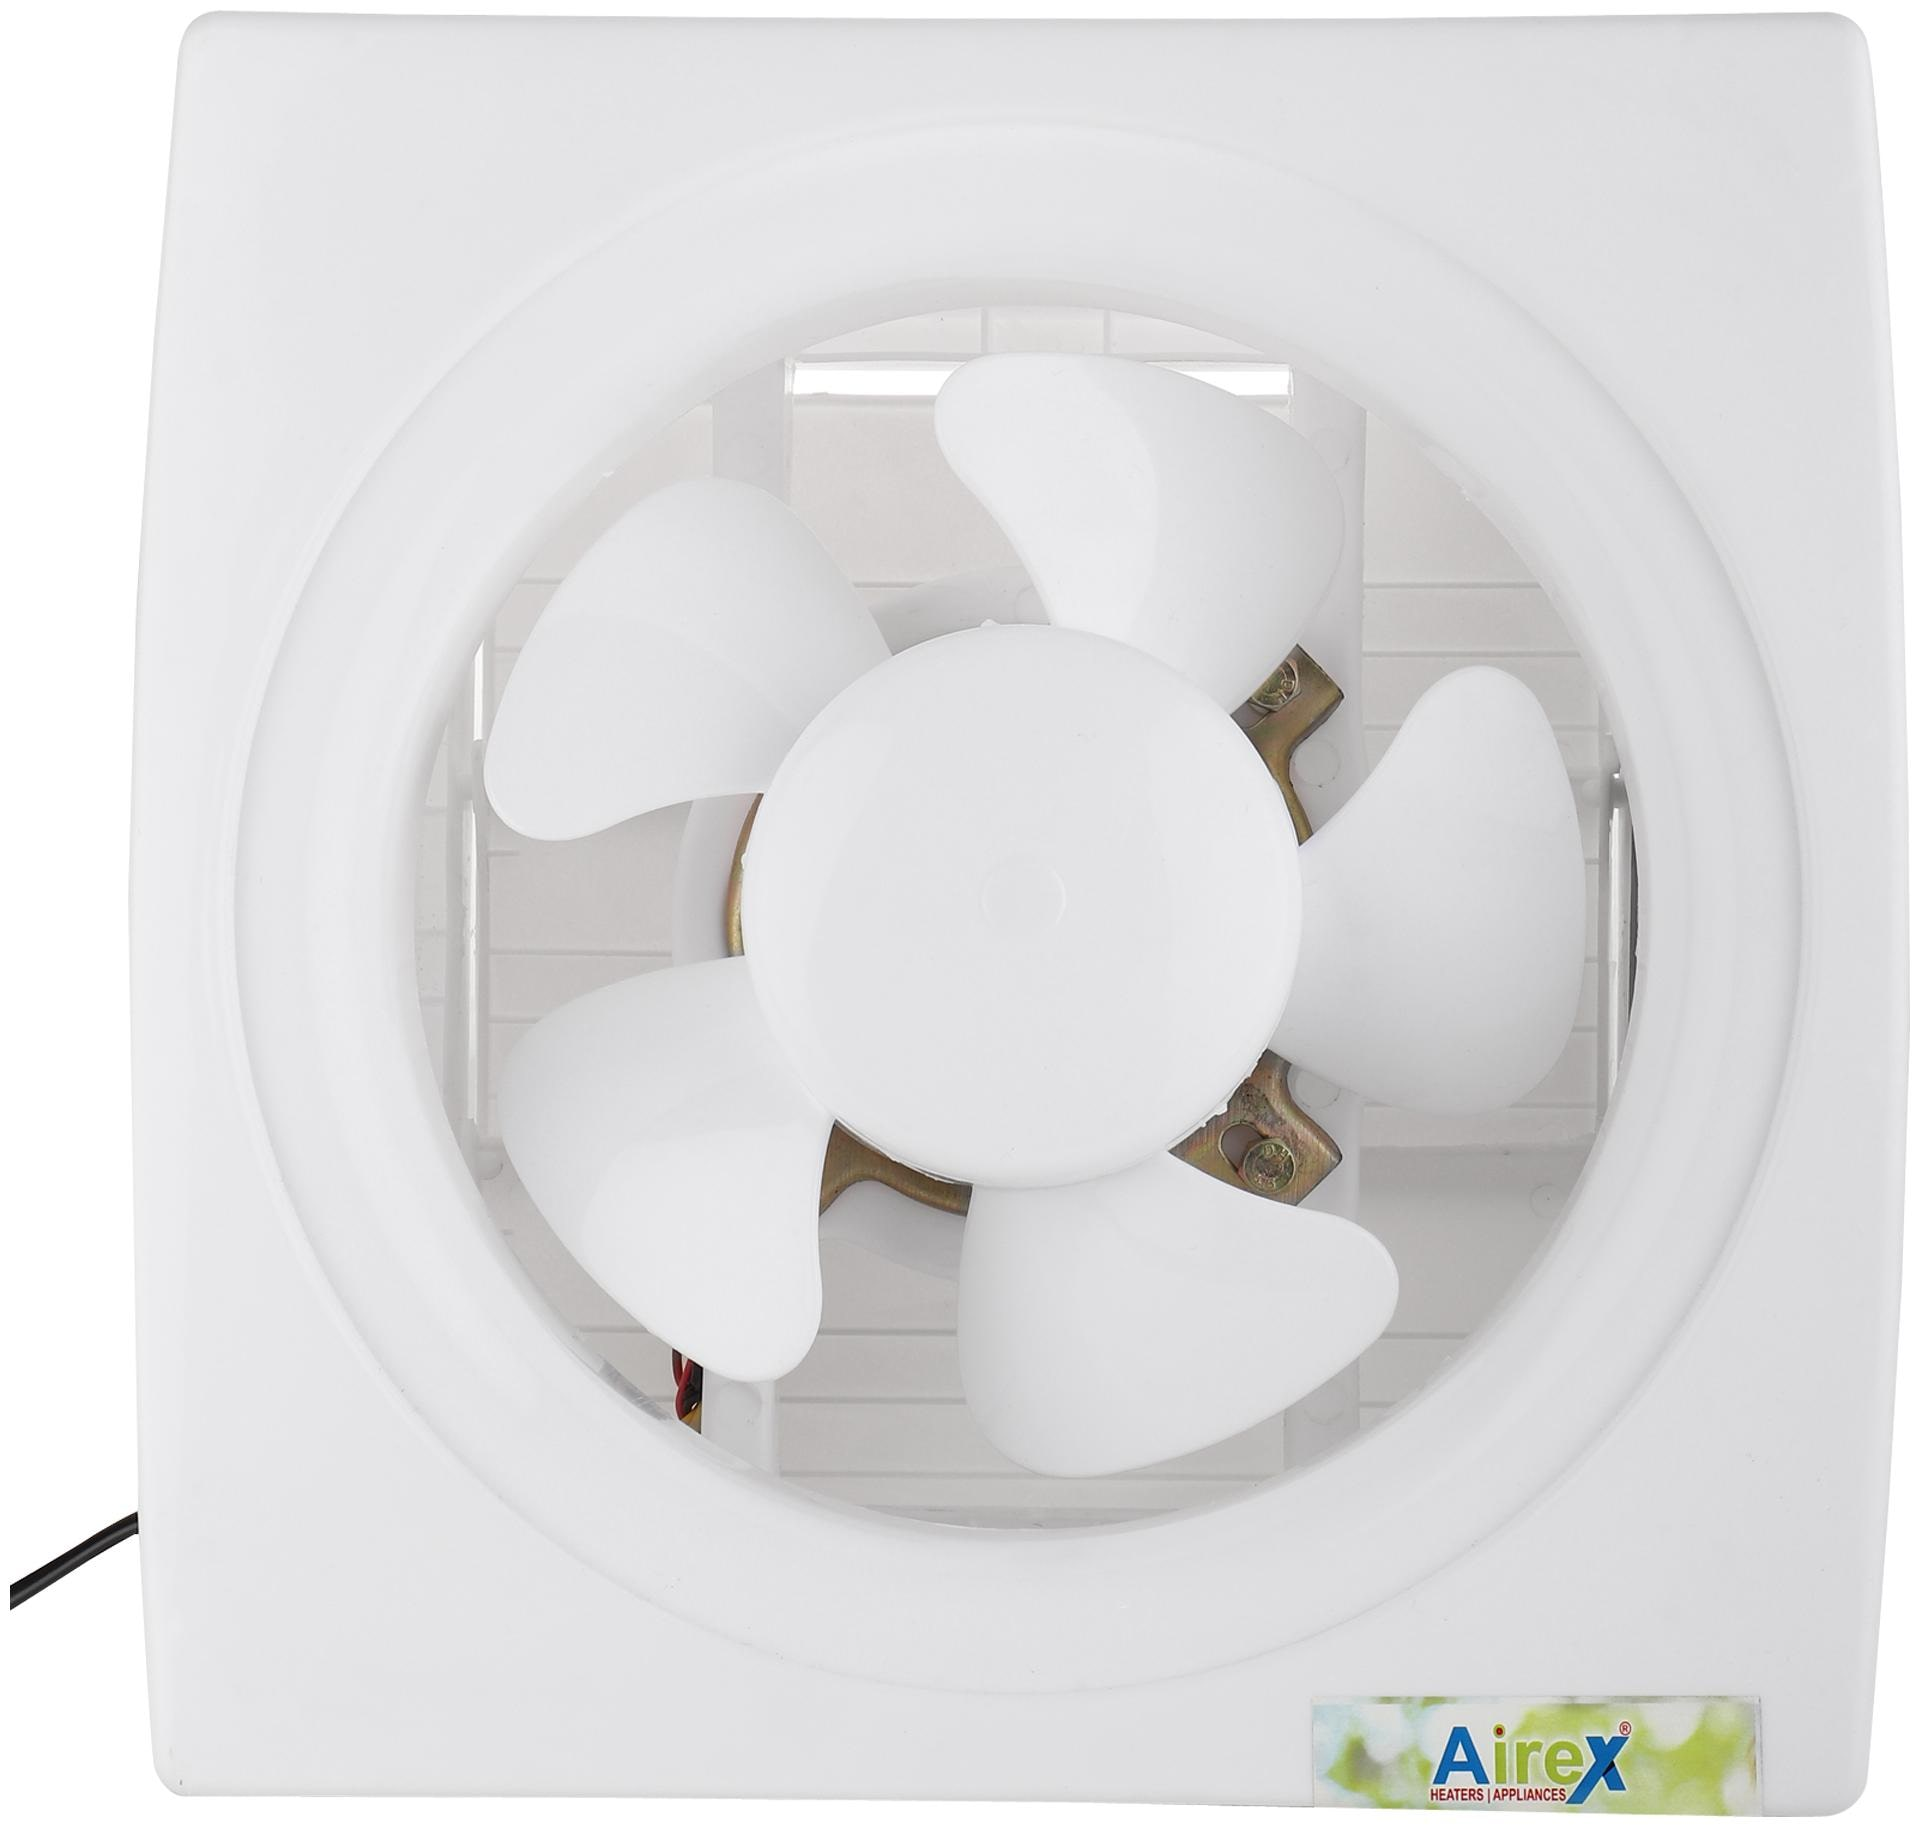 Airex AE 286 200 mm Exhaust Fan  White